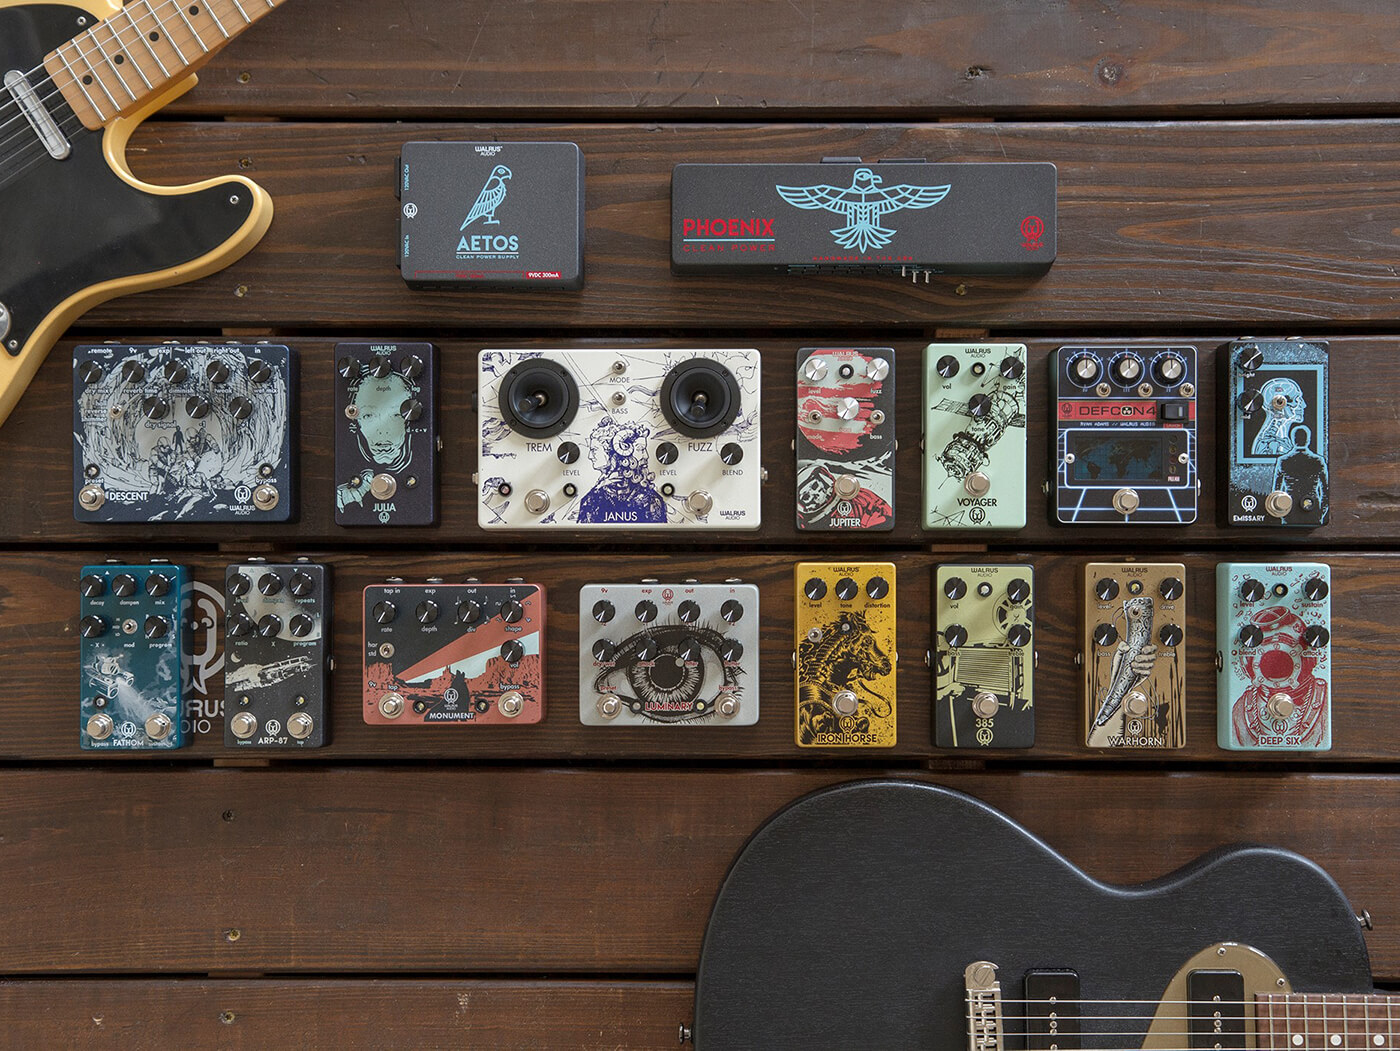 walrus audio effects pedals